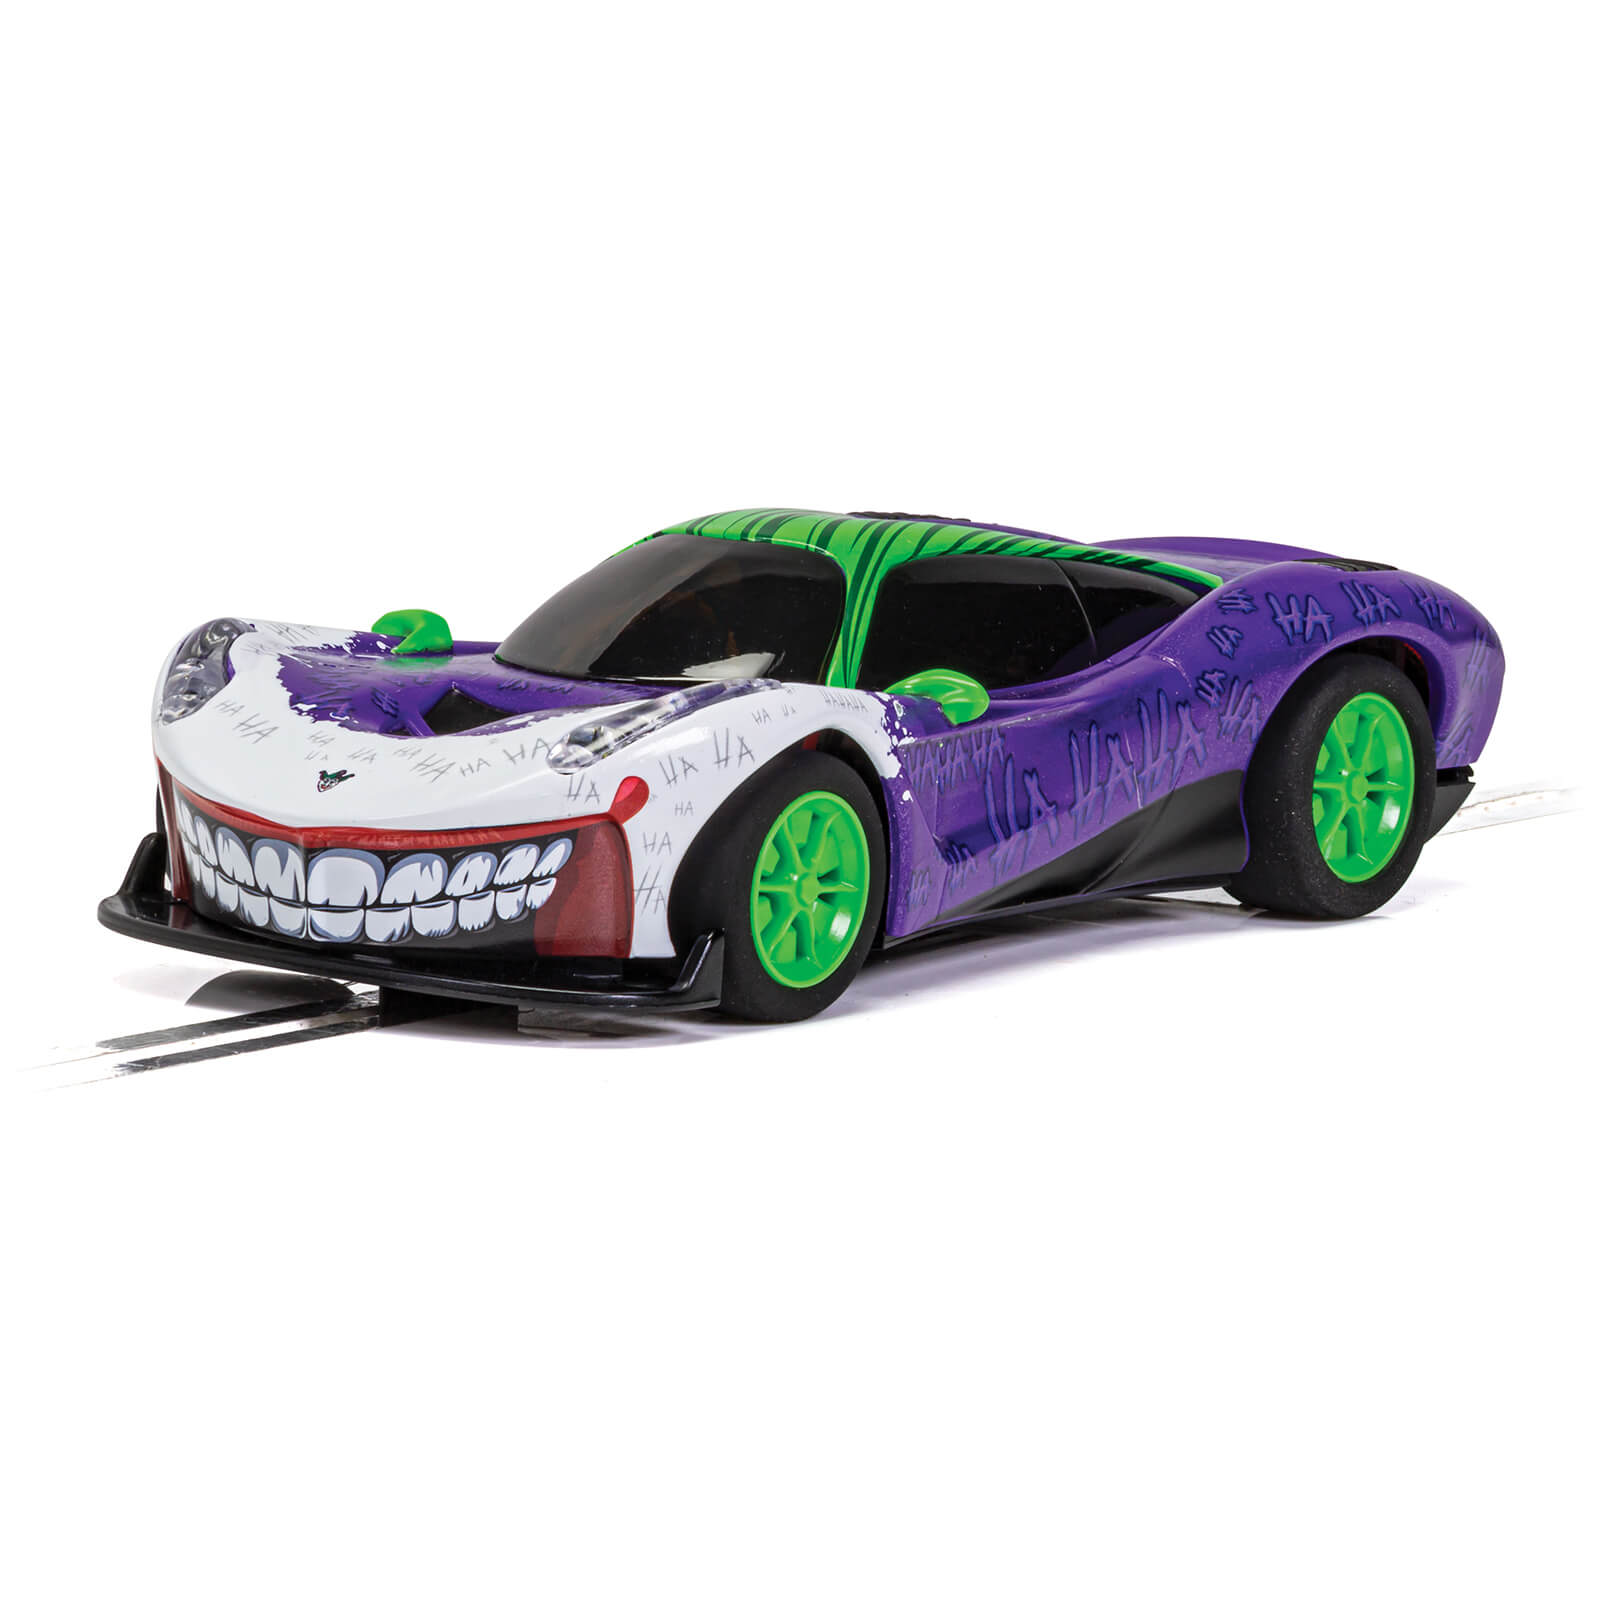 Scalextric Joker Inspired Car – Scale 1:32